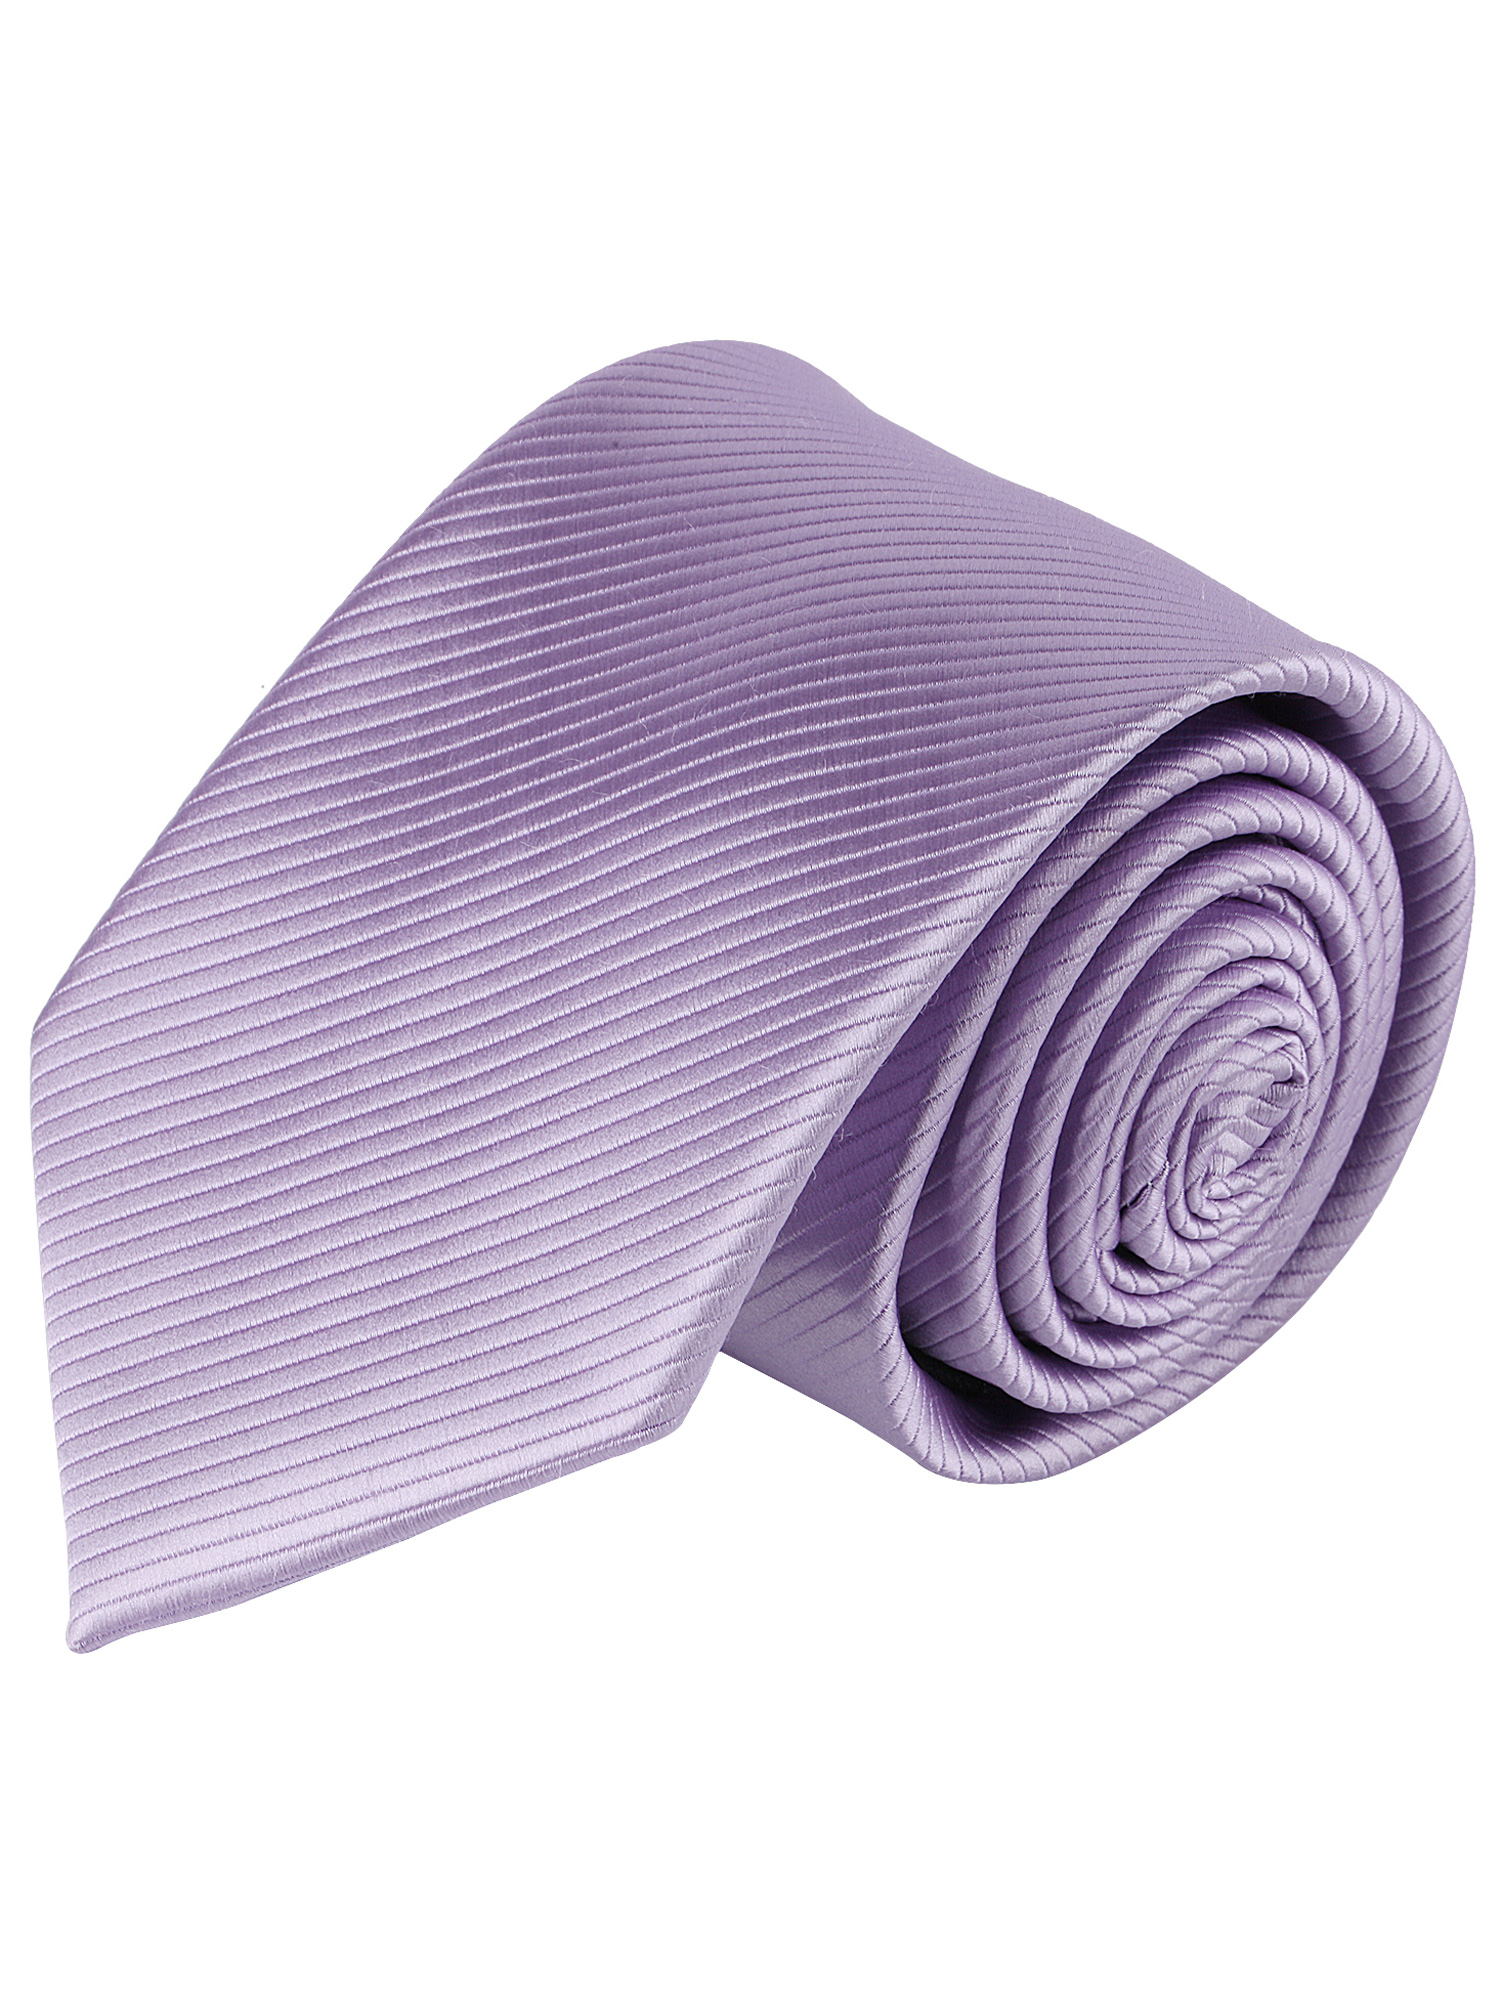 Jacob Alexander Boys Tone on Tone Corded Neck Tie